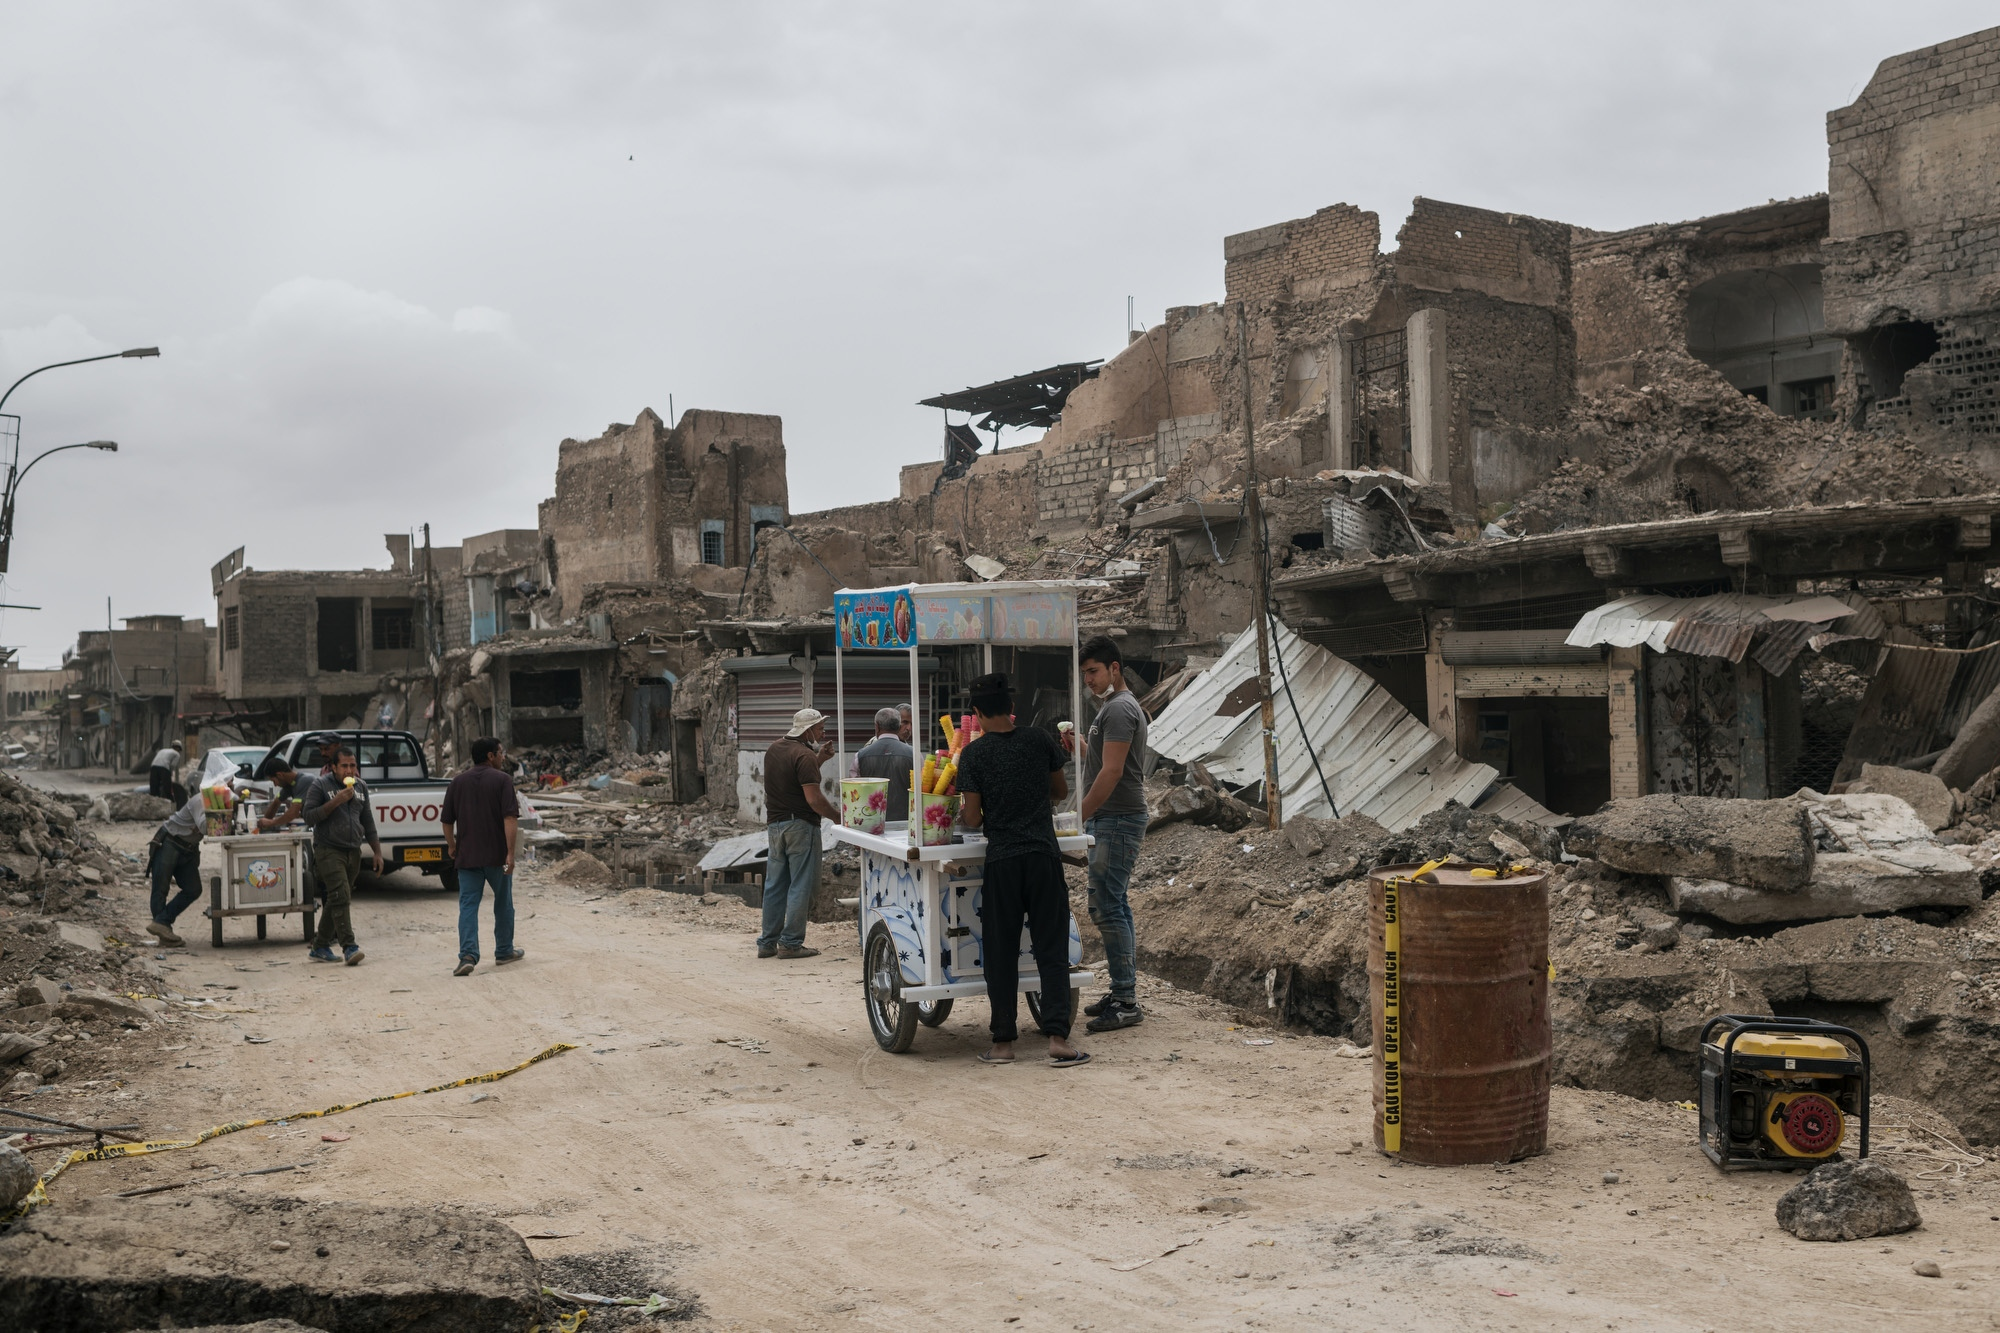 MOSUL 20180412 A few ice cream vendors have opened in Mosuls old town, which was subject to the heaviest fighting during the offensive against Daesh. Photo: Vilhelm Stokstad / Kontinent